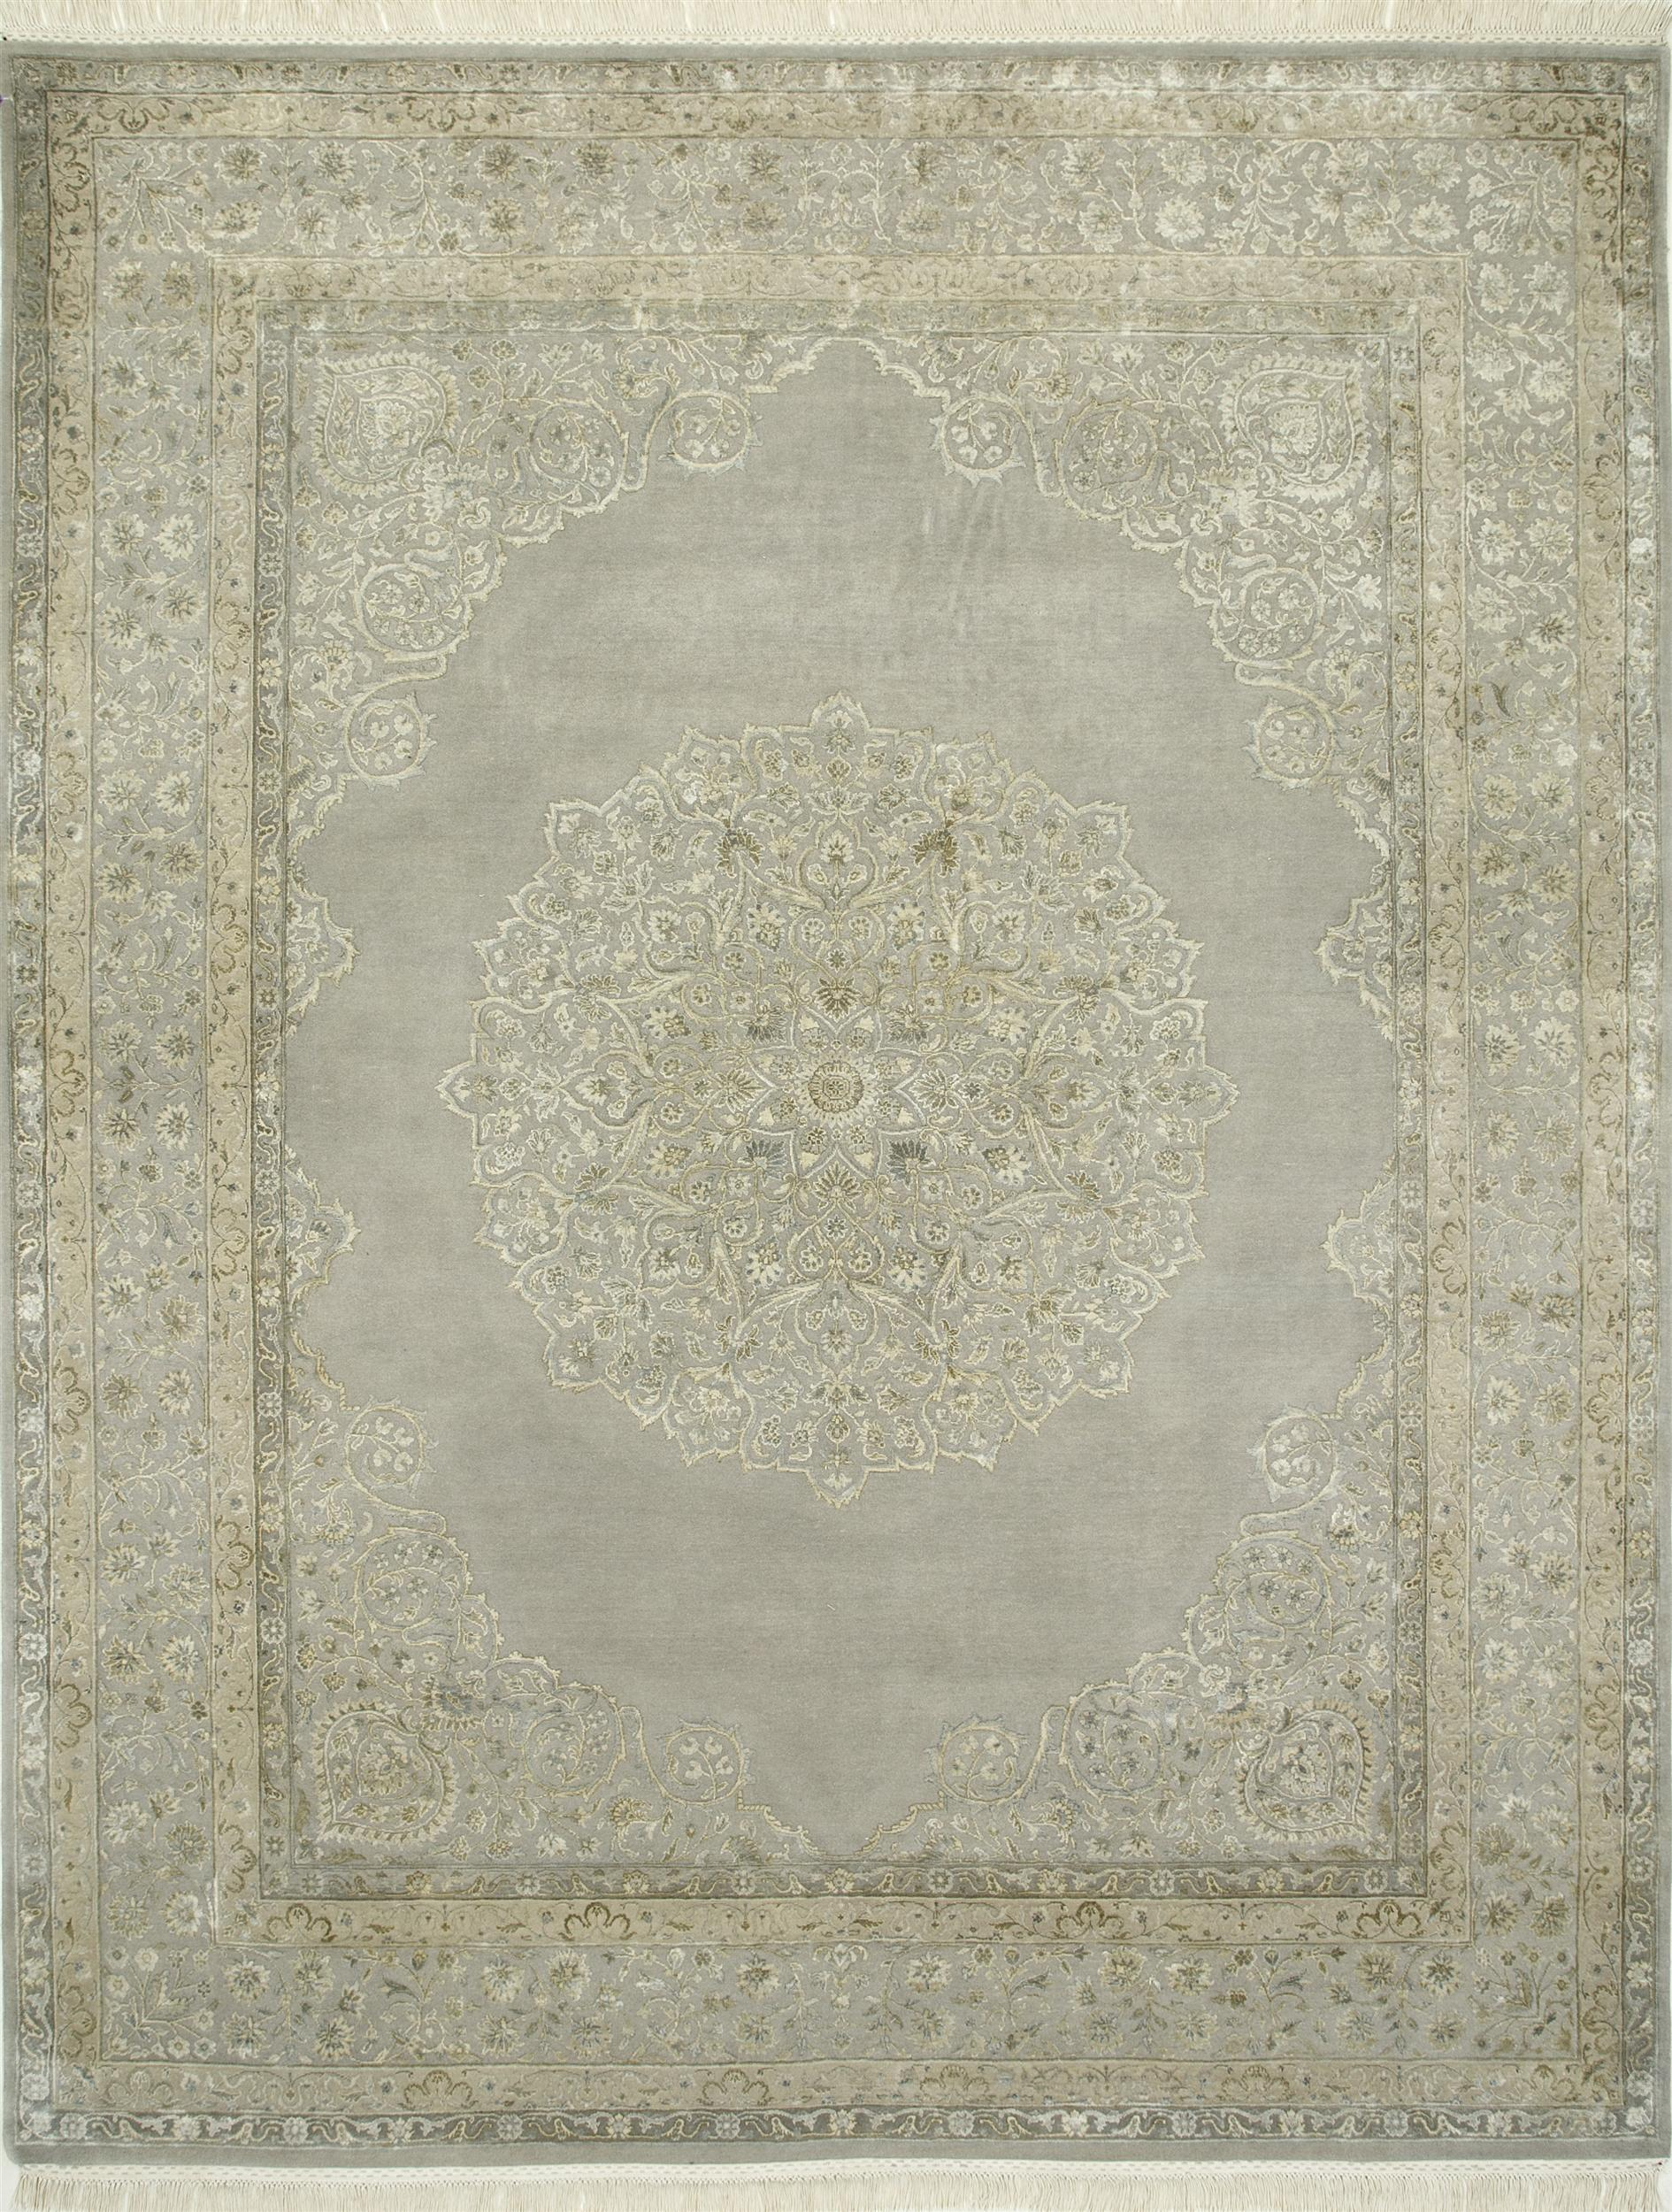 10 Foot Square Rug Part - 48: Indian Jaipur Grey Rectangle 3x5 Ft Wool And Silk Carpet 75469